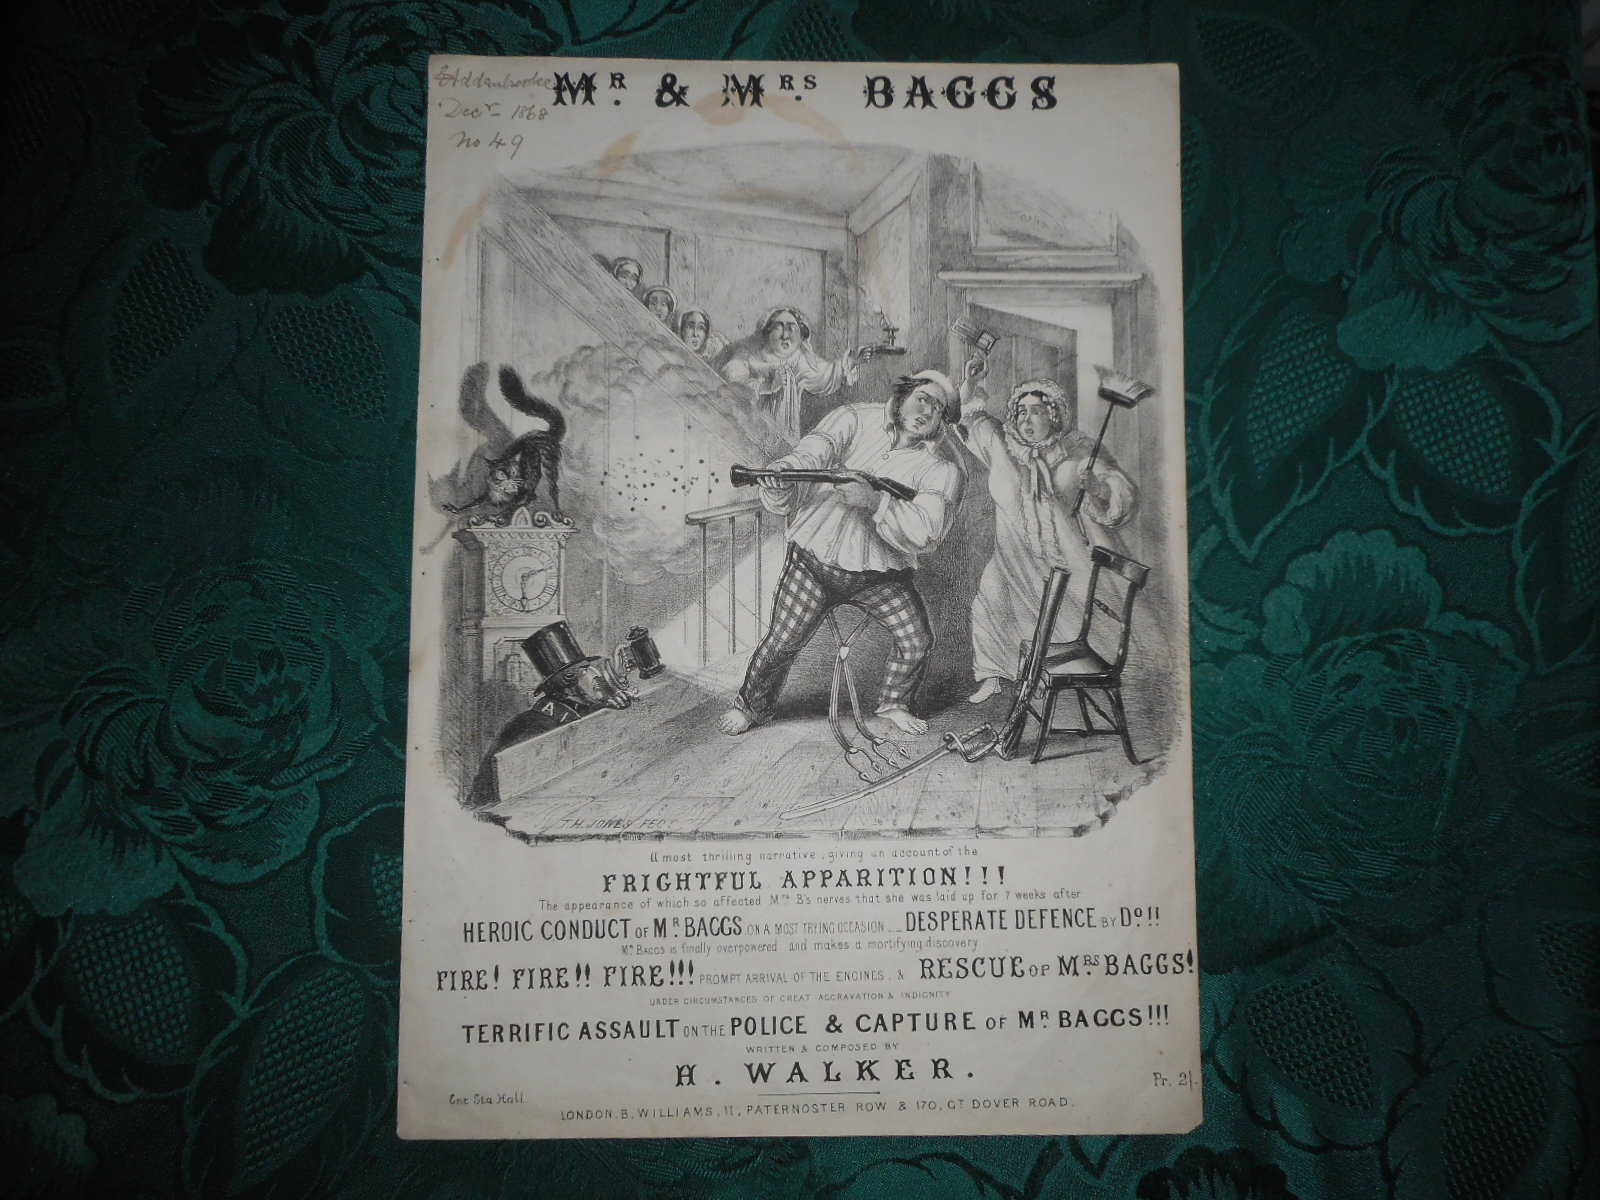 Image for Mr and Mrs Baggs - Sheet Music Cover - Black & White Lithograph T. H. Jones Illustrator of This Black & White Comic Lithograph